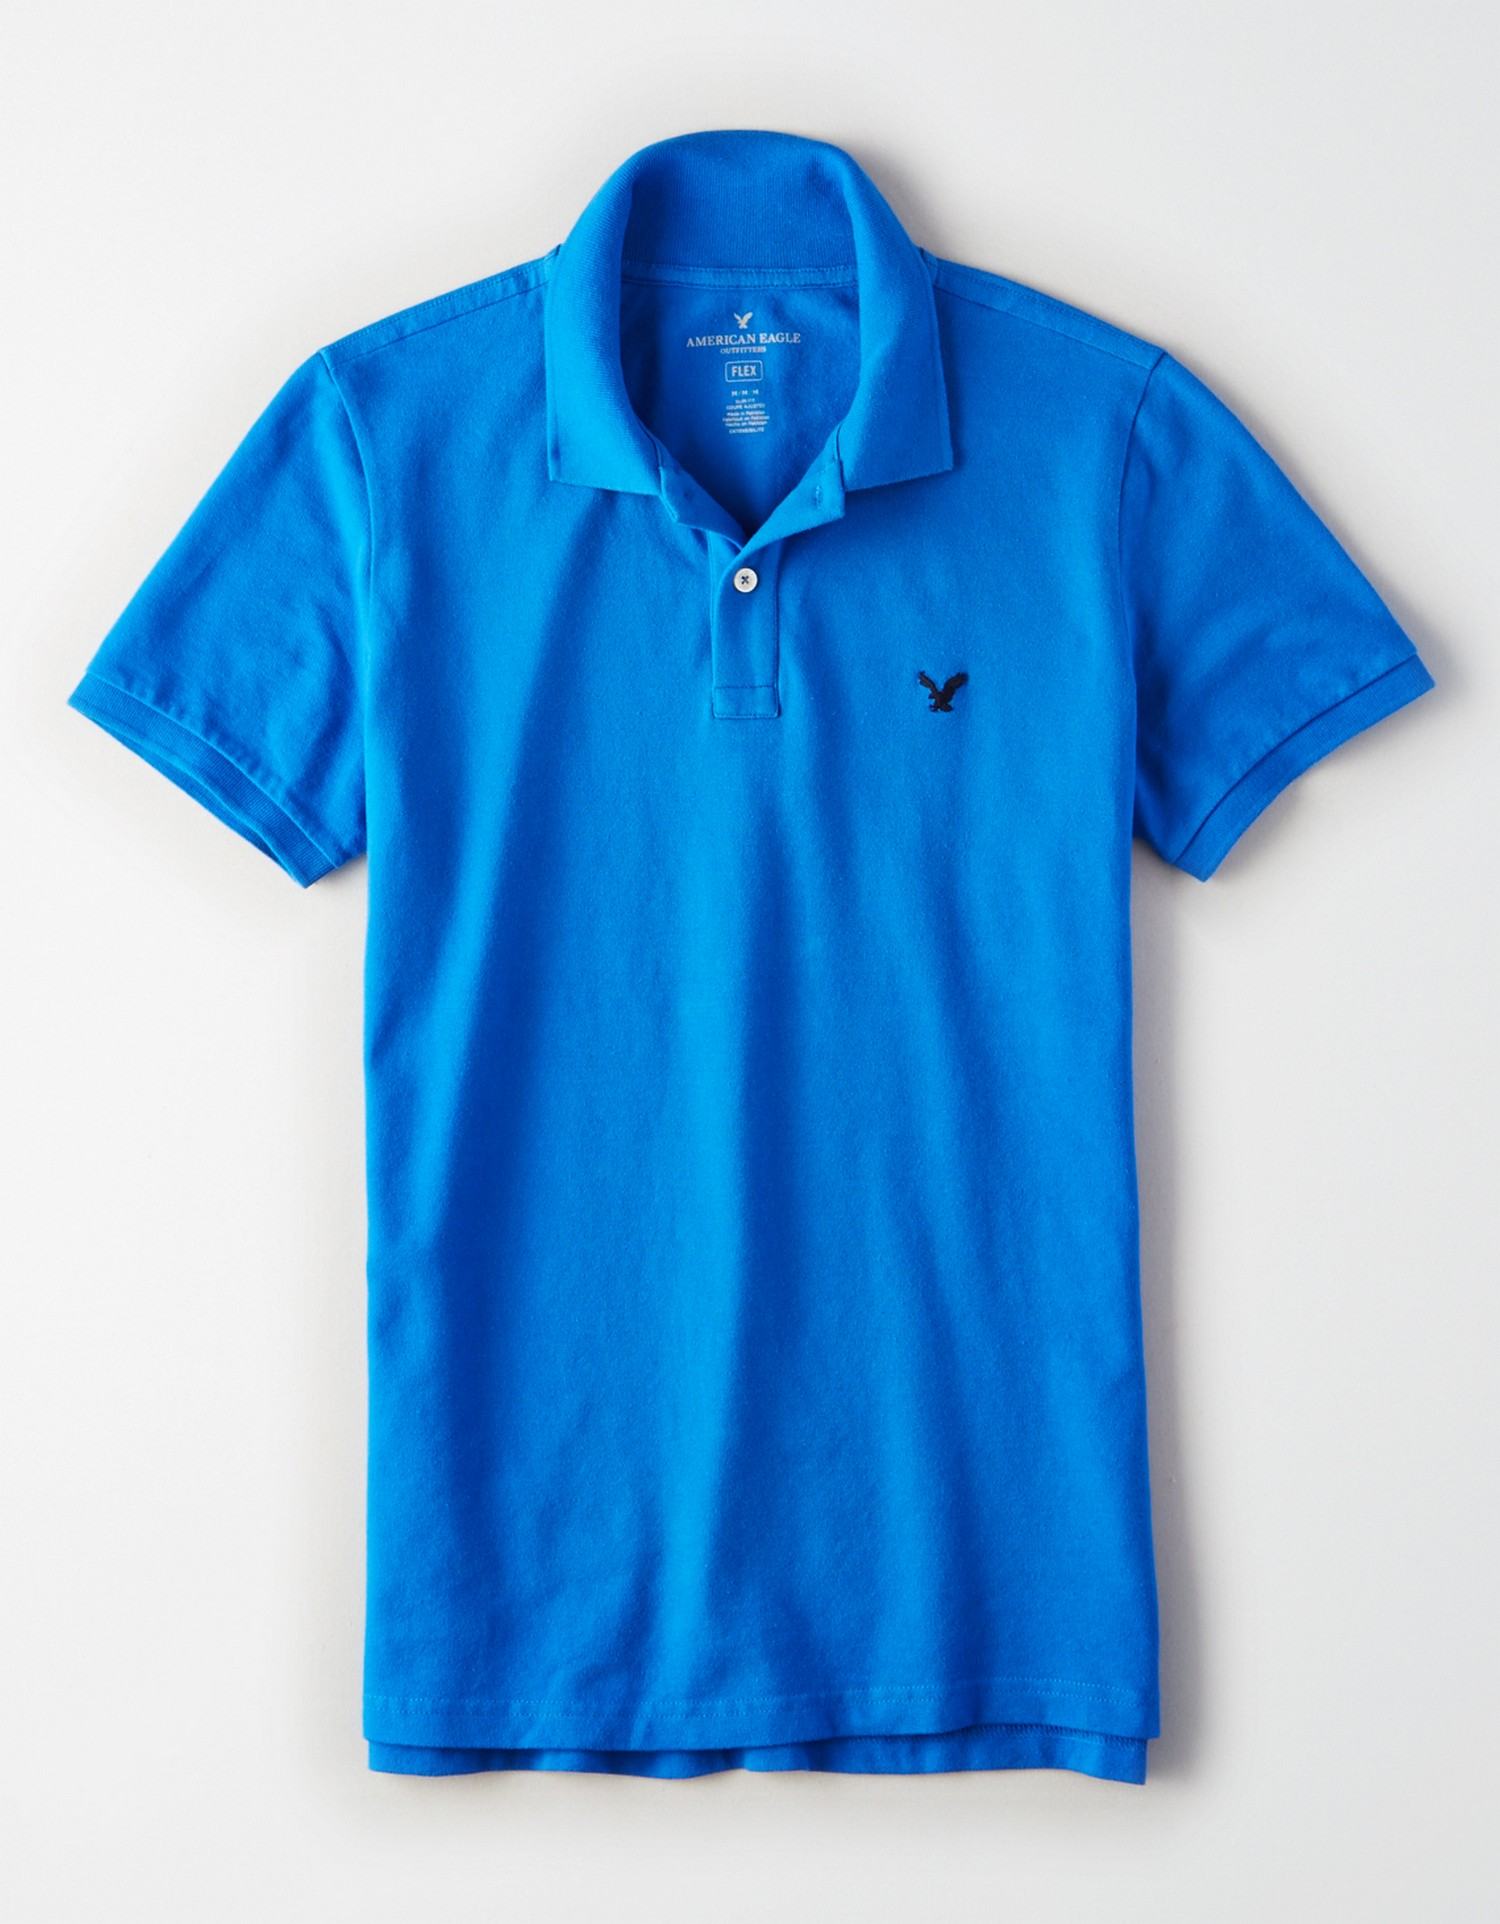 AE - INTL - Apparel - M - SF Pique Polo - Blue - Solid Color - navy blue embroidered eagle on left chest AL